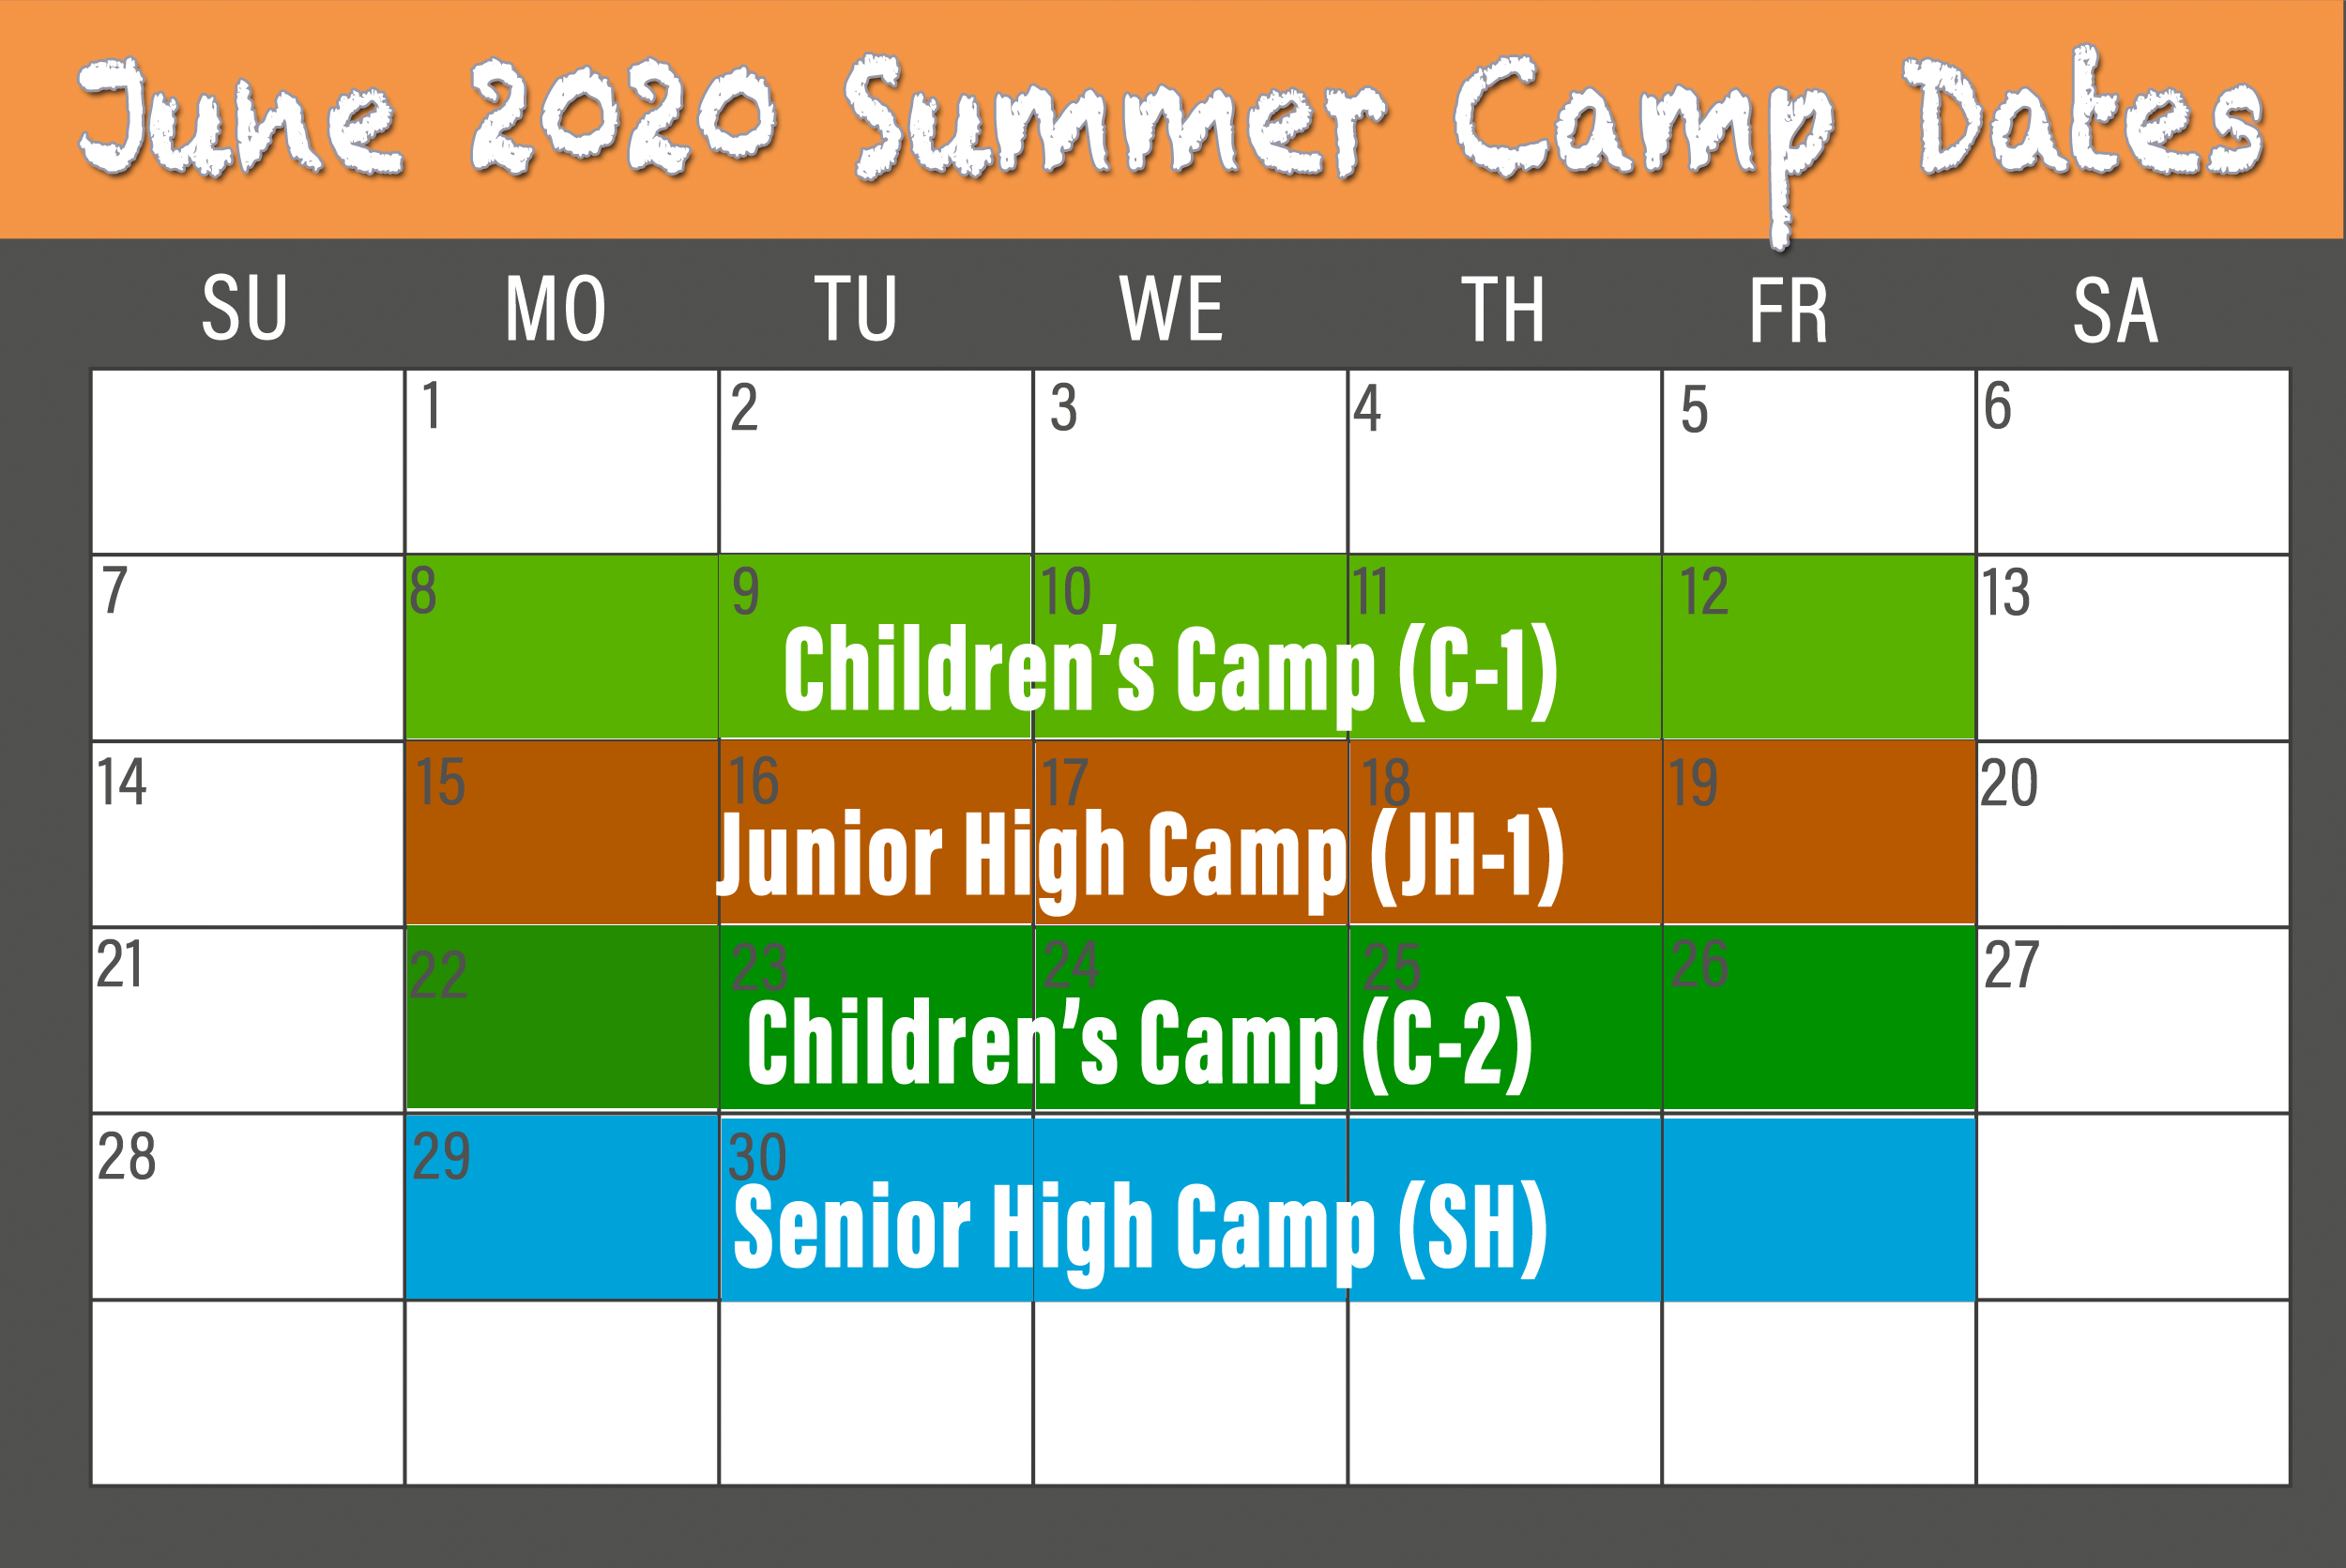 June 2020 Summer Camp Dates